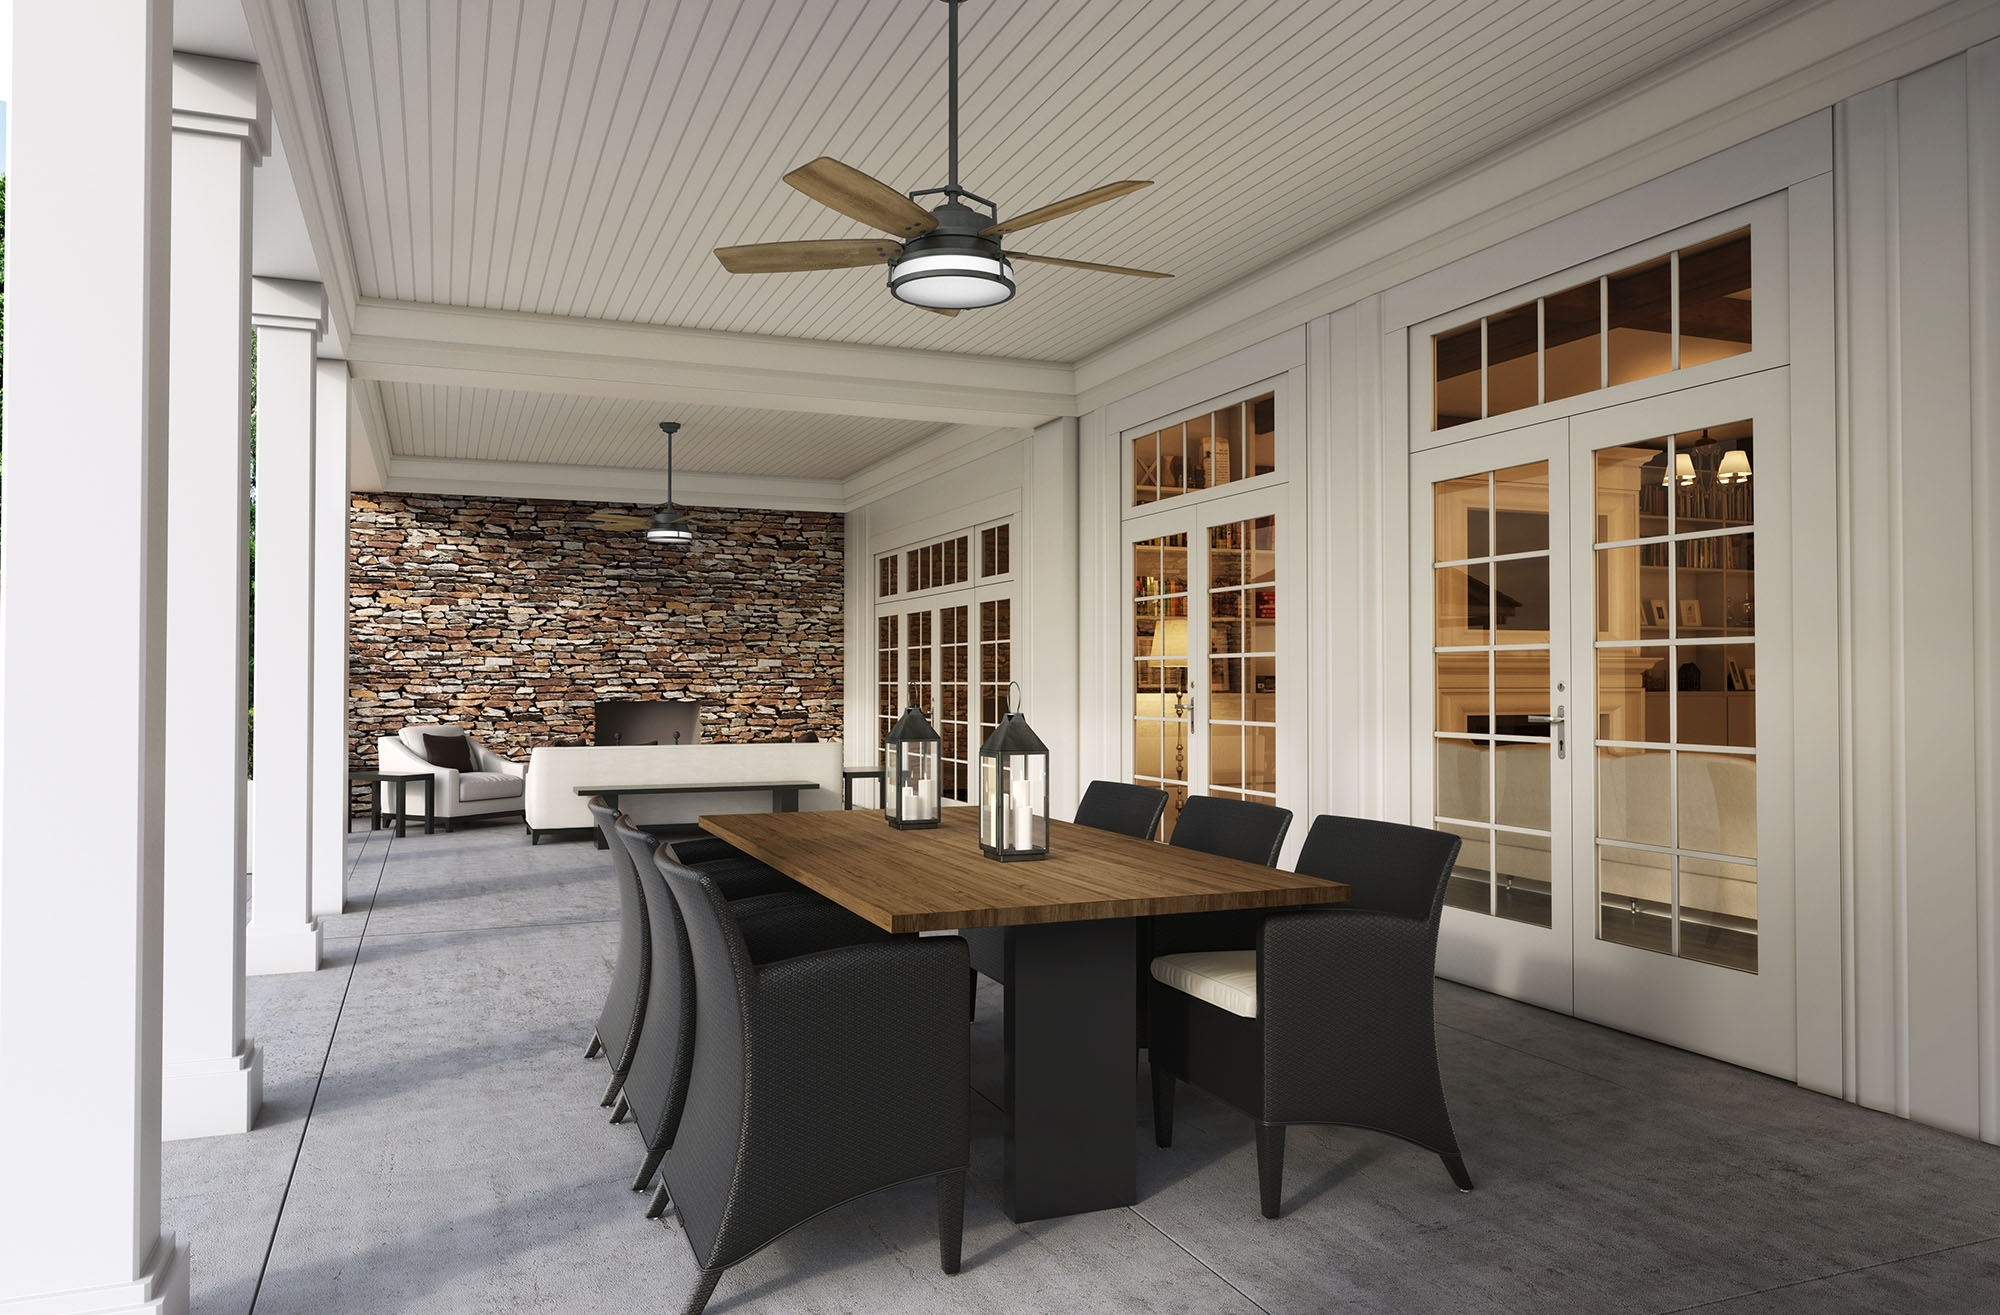 Joanna Gaines Outdoor Ceiling Fans Pertaining To Popular Caneel Bay Featured In Hgtv's Fixer Upper – Casablanca Fan Company Blog (View 4 of 20)